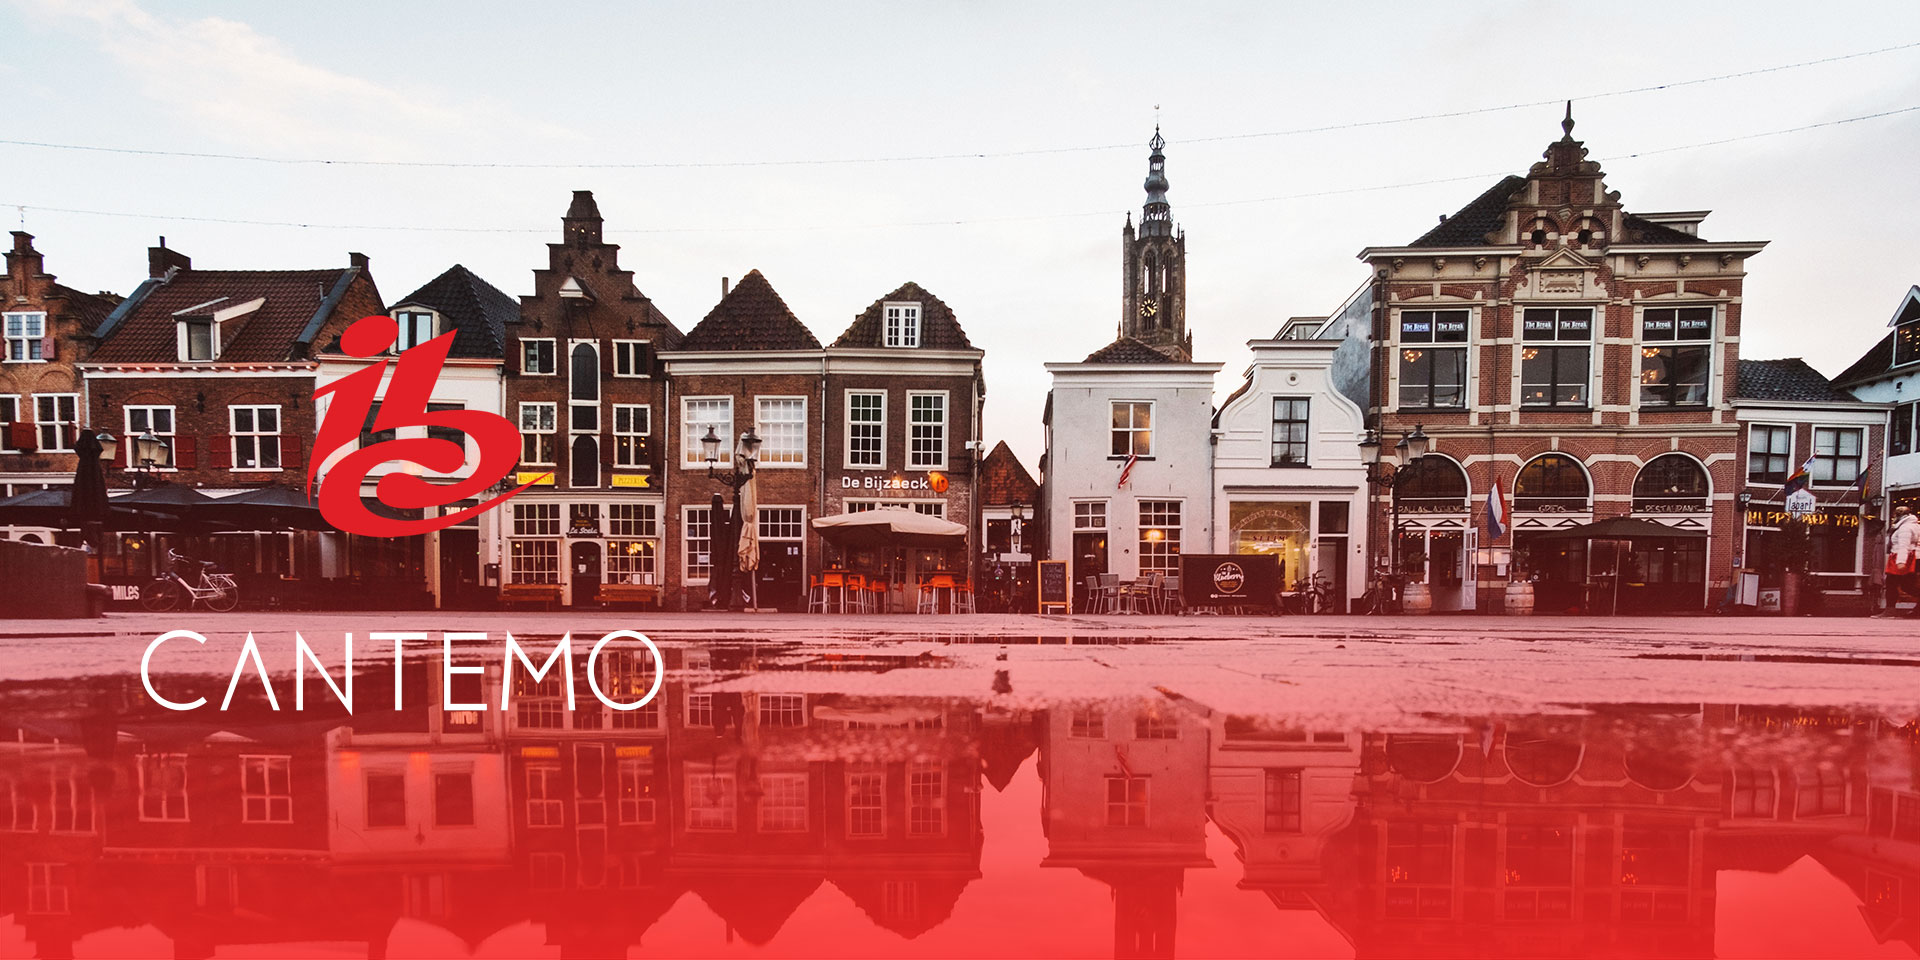 Cantemo at IBC 2018 Amsterdam